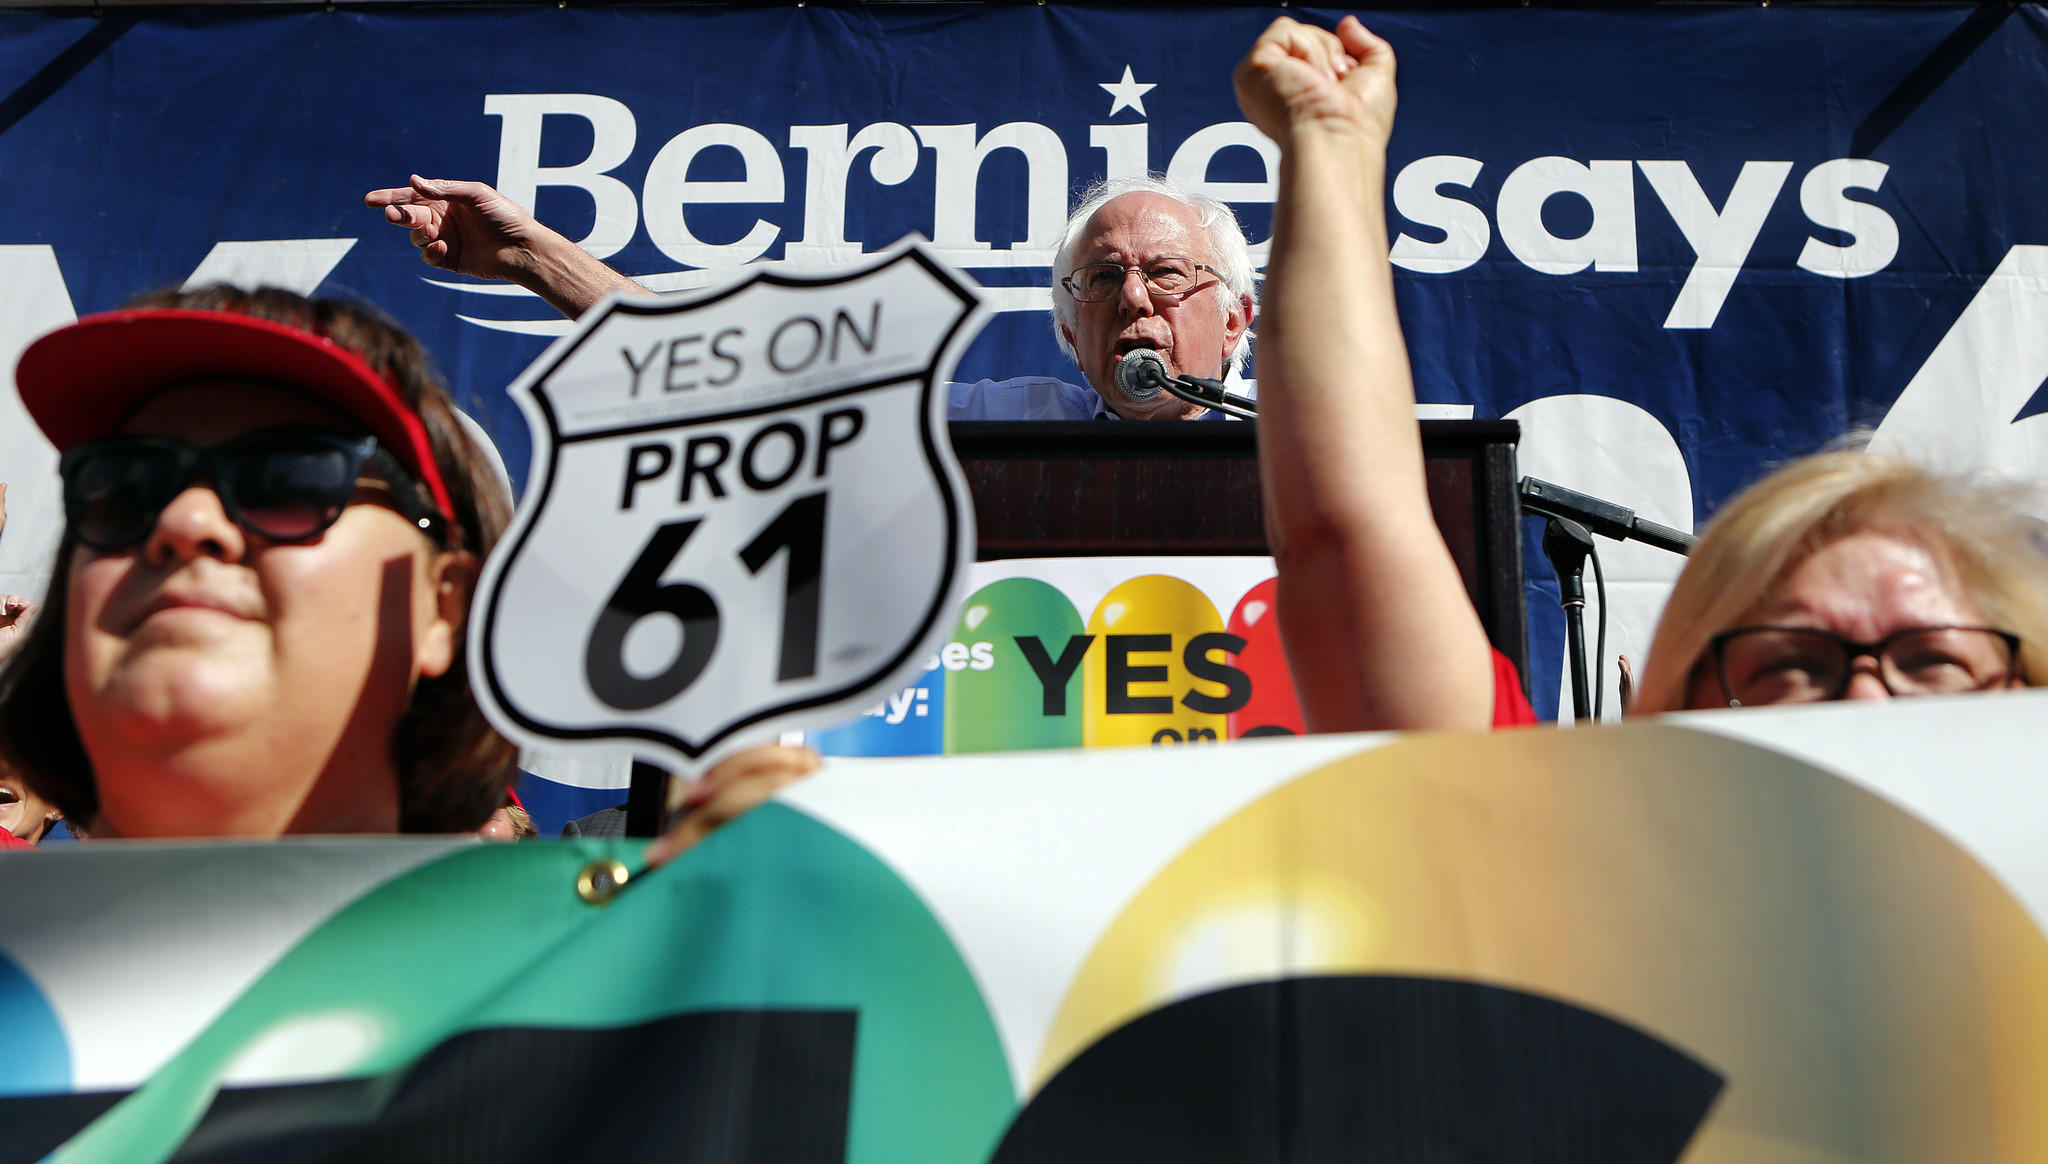 Sen. Bernie Sanders urges a crowd in Los Angeles to support Proposition 61, a ballot measure on prescription drug pricing. (Mel Melcon / Los Angeles Times)